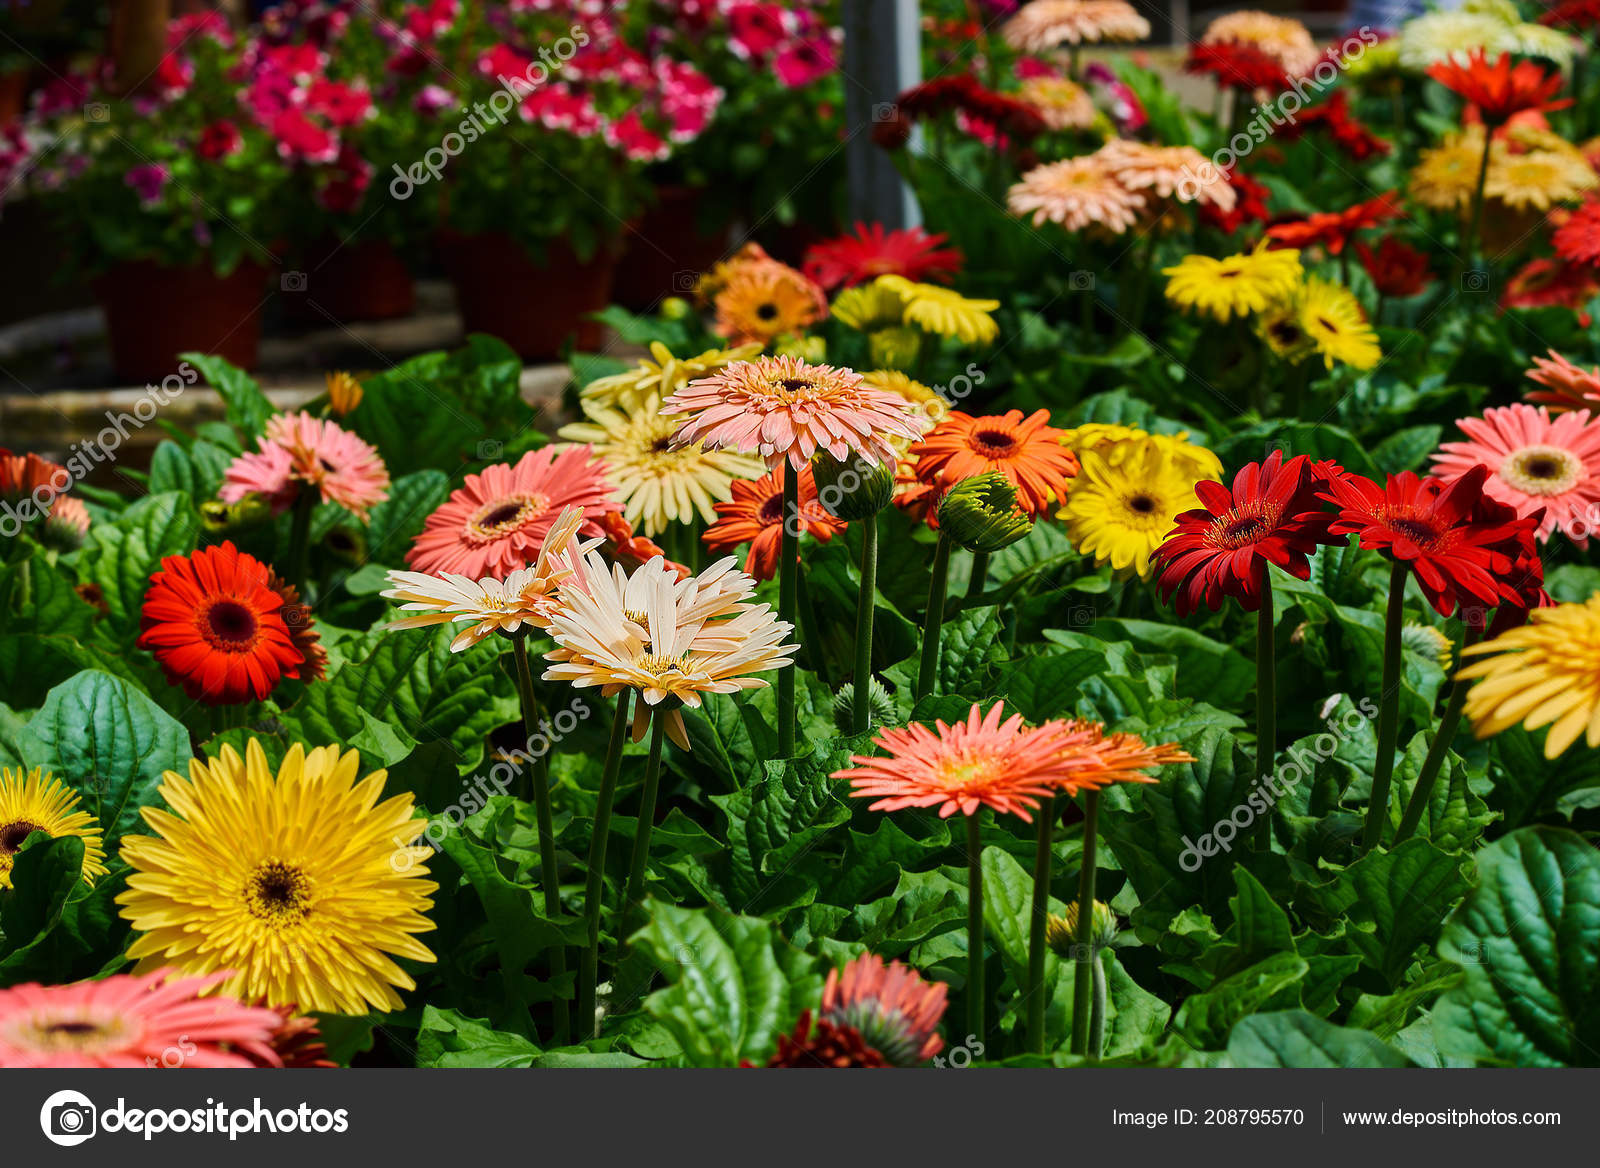 Many Gerbera Daisy Greenhouse Production Cultivation Flowers Gerbera Plantation Gardening Stock Photo C Eskstock Gmail Com 208795570